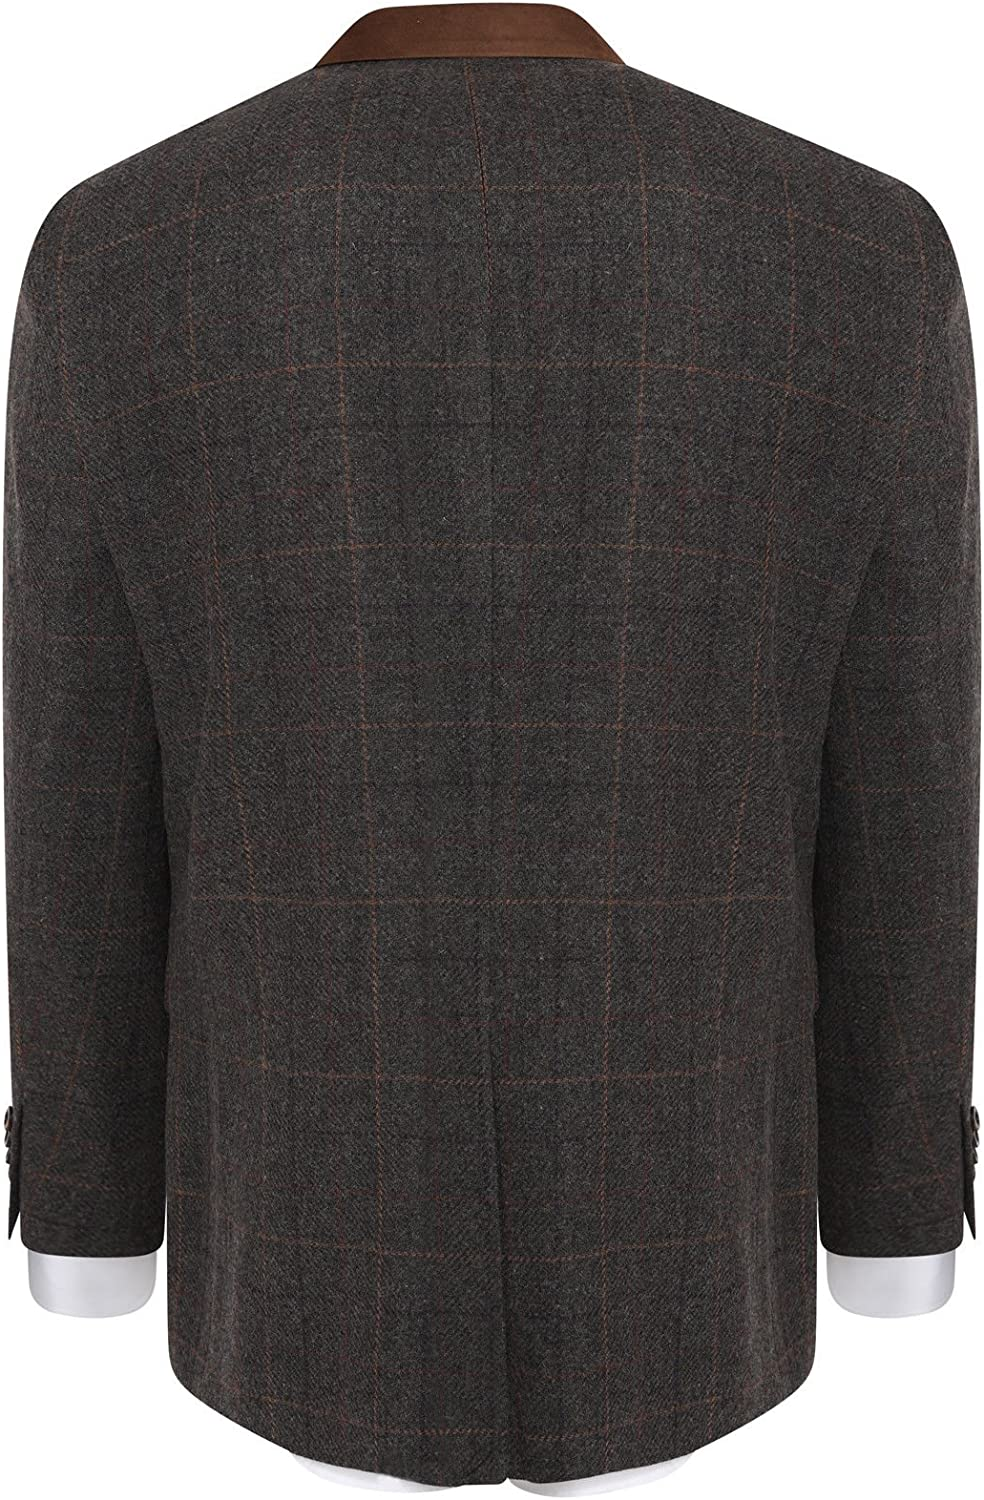 HARRY BROWN Blazer Wool Blend Check Tailored Fit